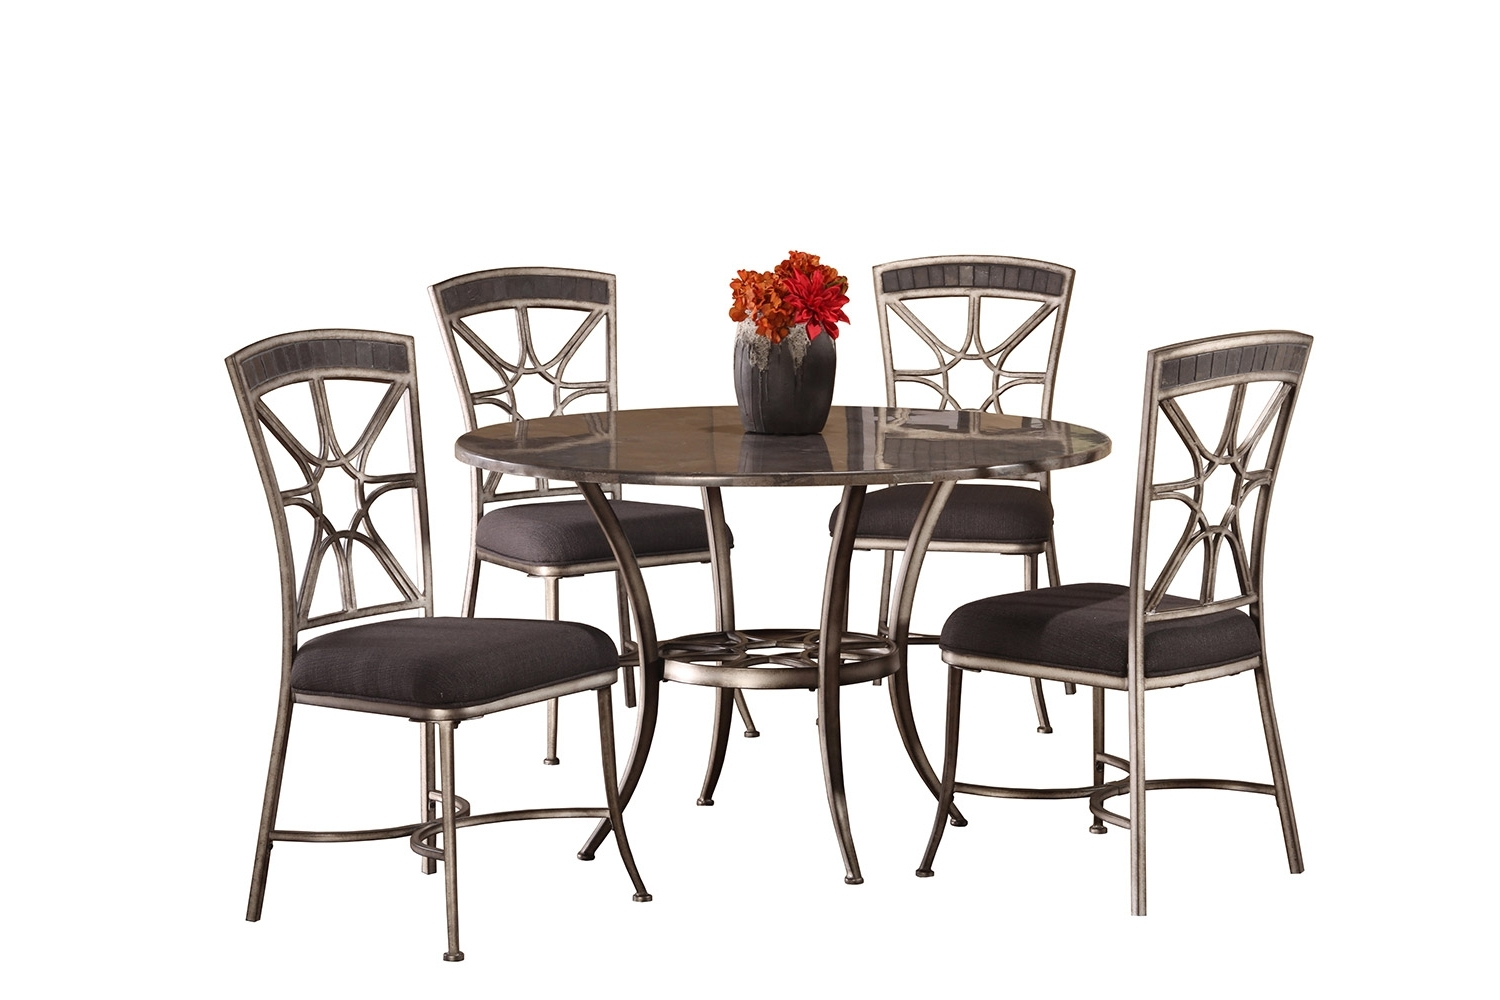 Chandler Extension Dining Tables Throughout Best And Newest Hillsdale Chandler 5 Piece Dining Set – Black Pewter/blue Stone Top (View 24 of 25)